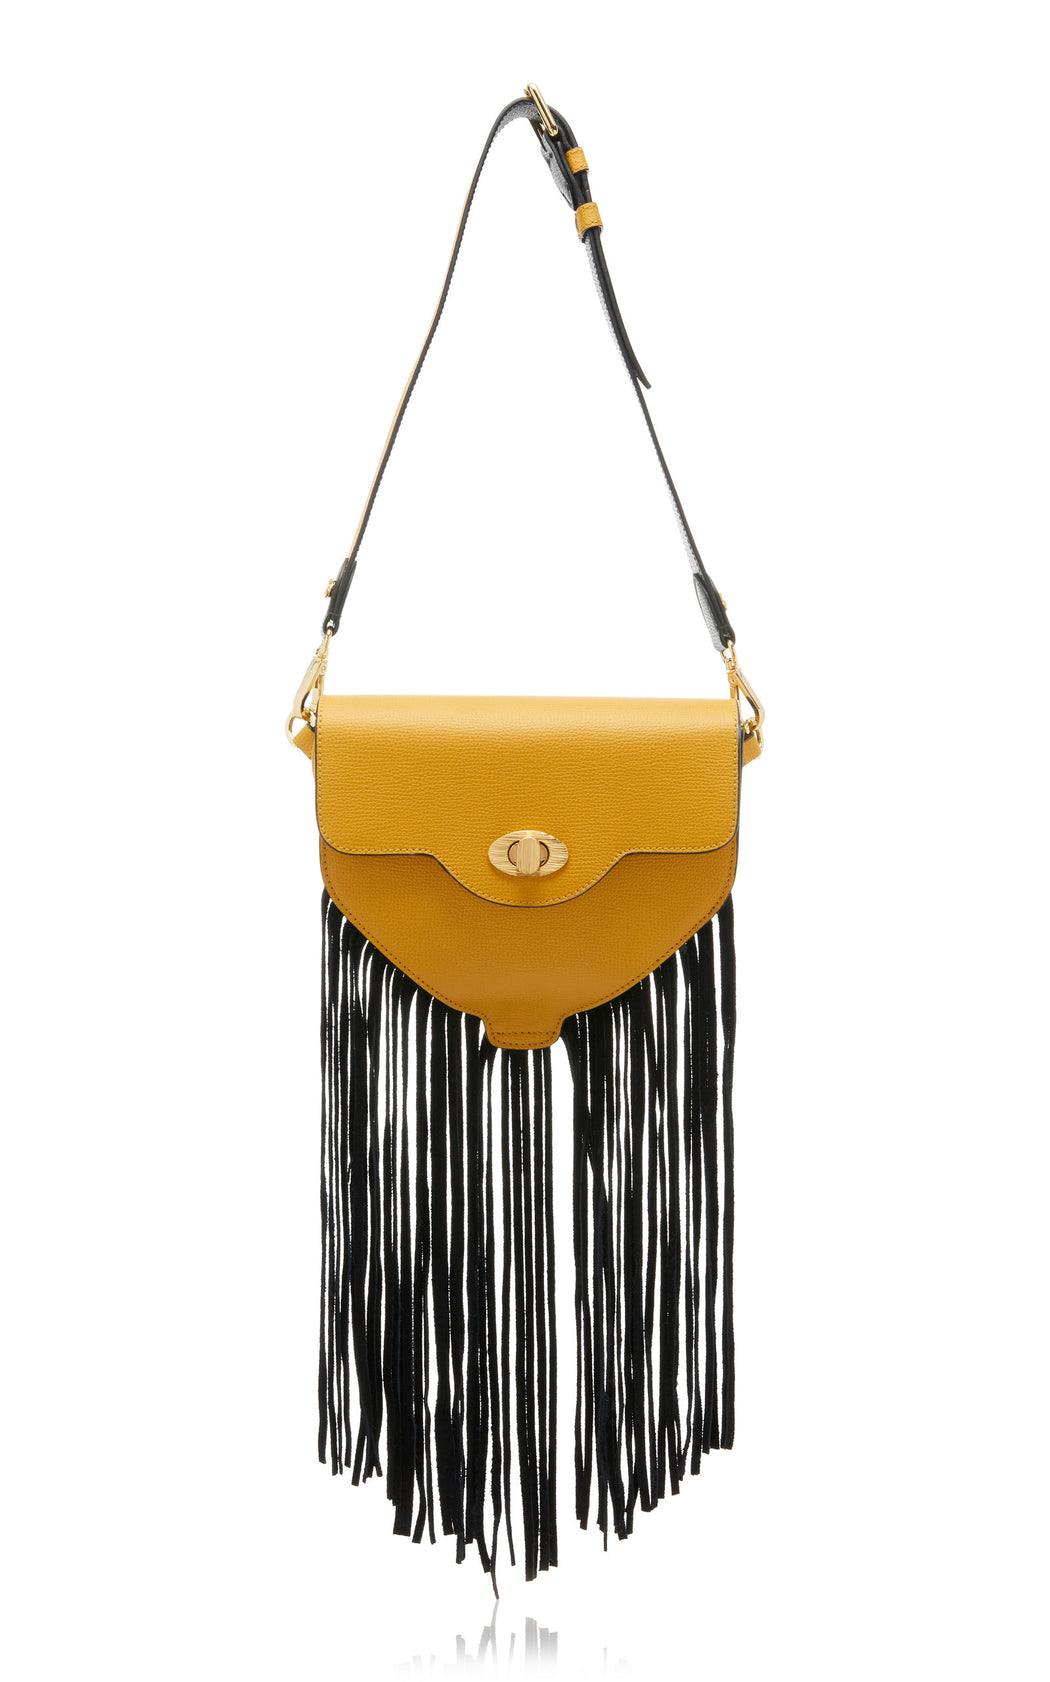 Fringed bag in yellow and black leather